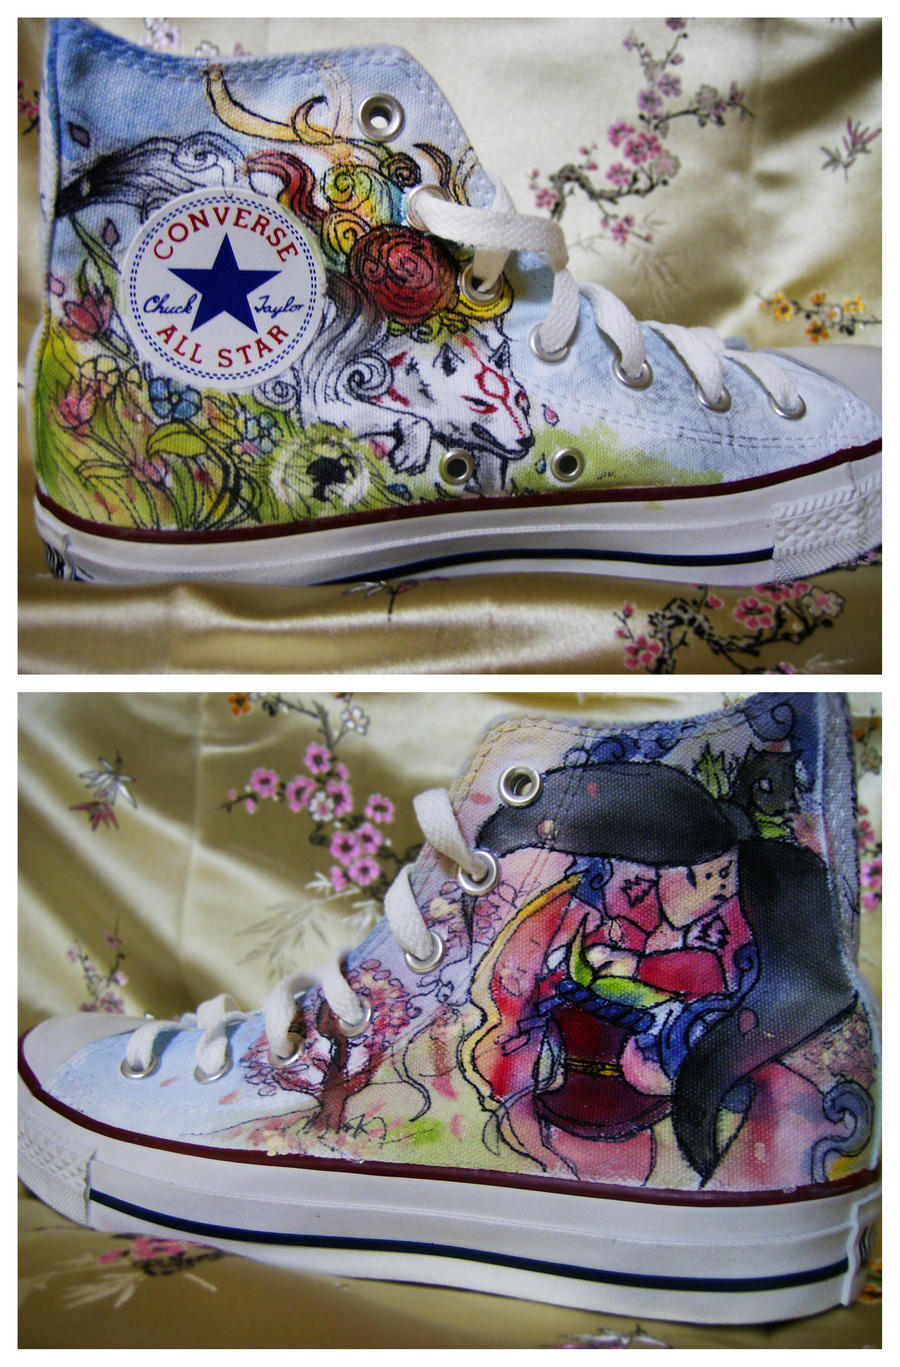 Okami Shoes 2 by pinkbutterflyofdeath